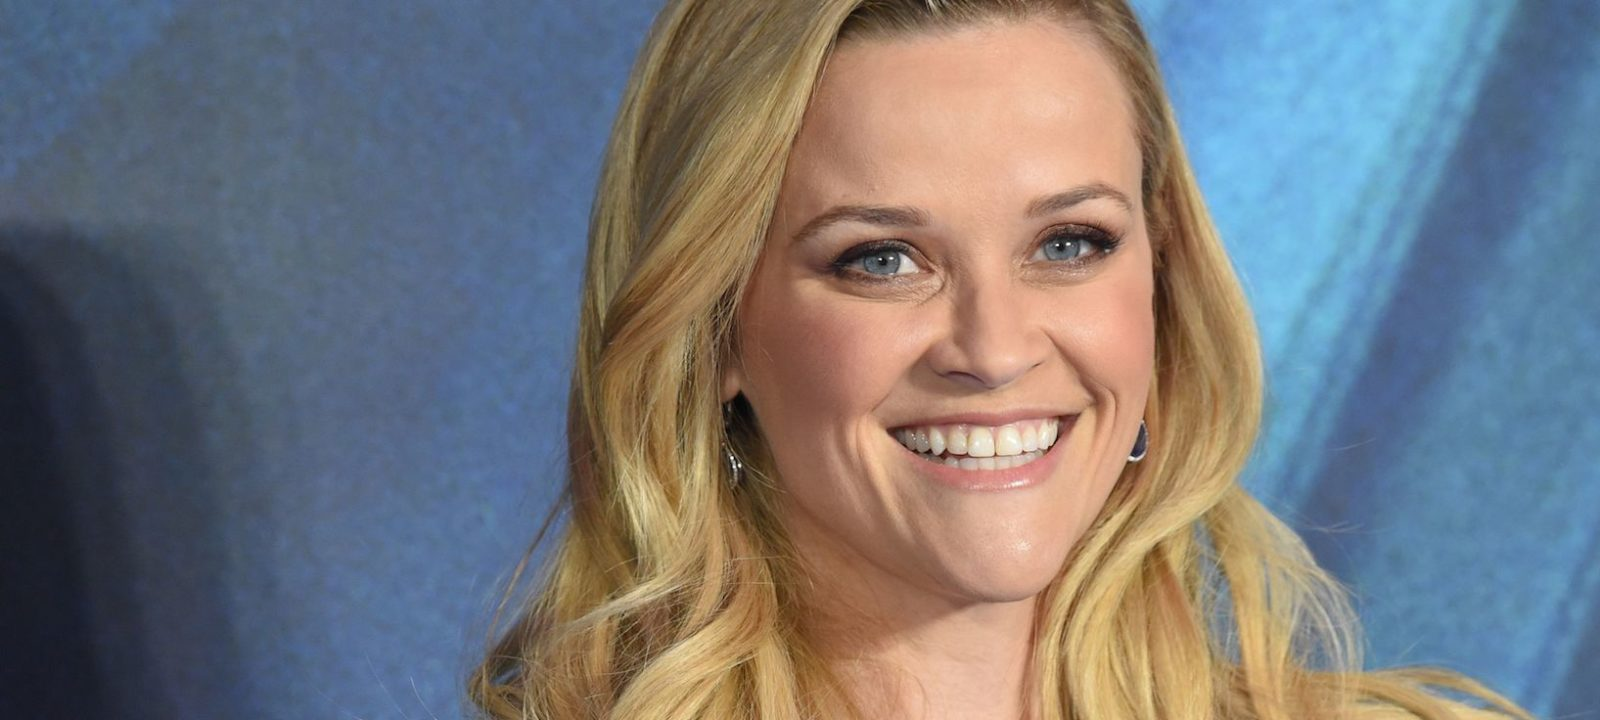 US actress Reese Witherspoon poses during the European premiere of A Wrinkle in Time in London on March 13, 2018. / AFP PHOTO / Anthony HARVEY